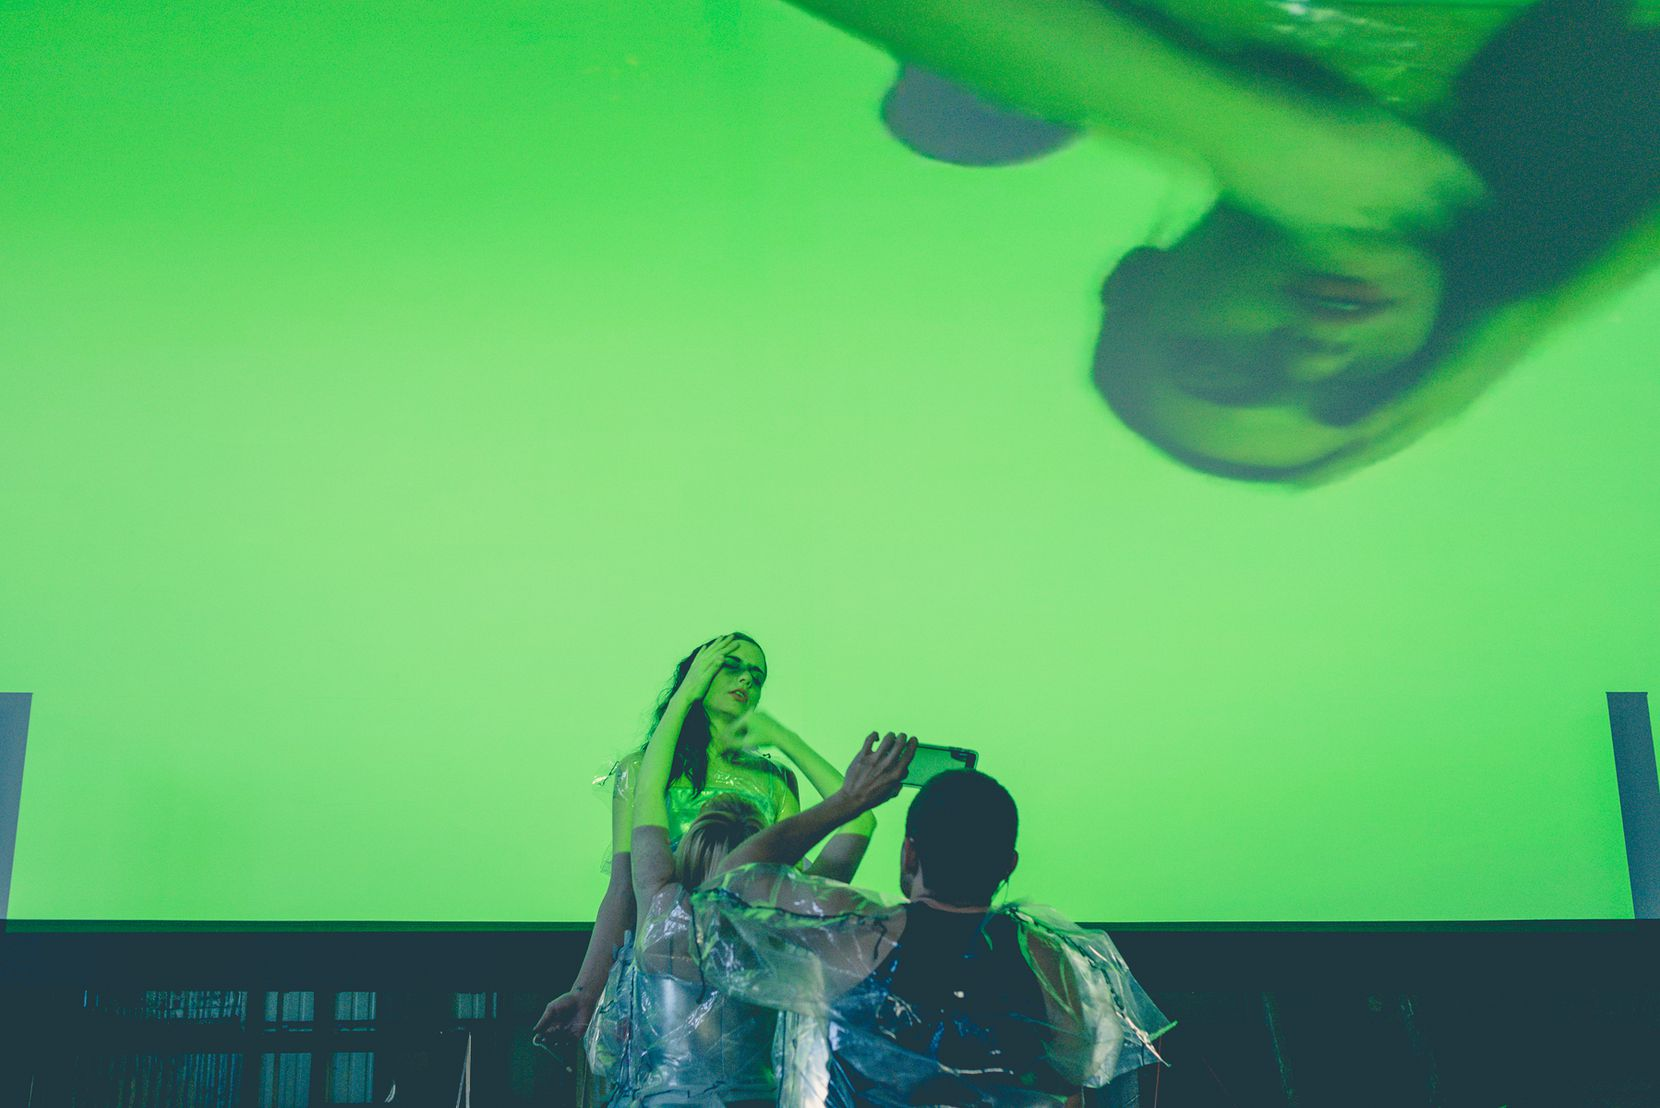 Performance artists movements are projected via live video from their phones during music performances.